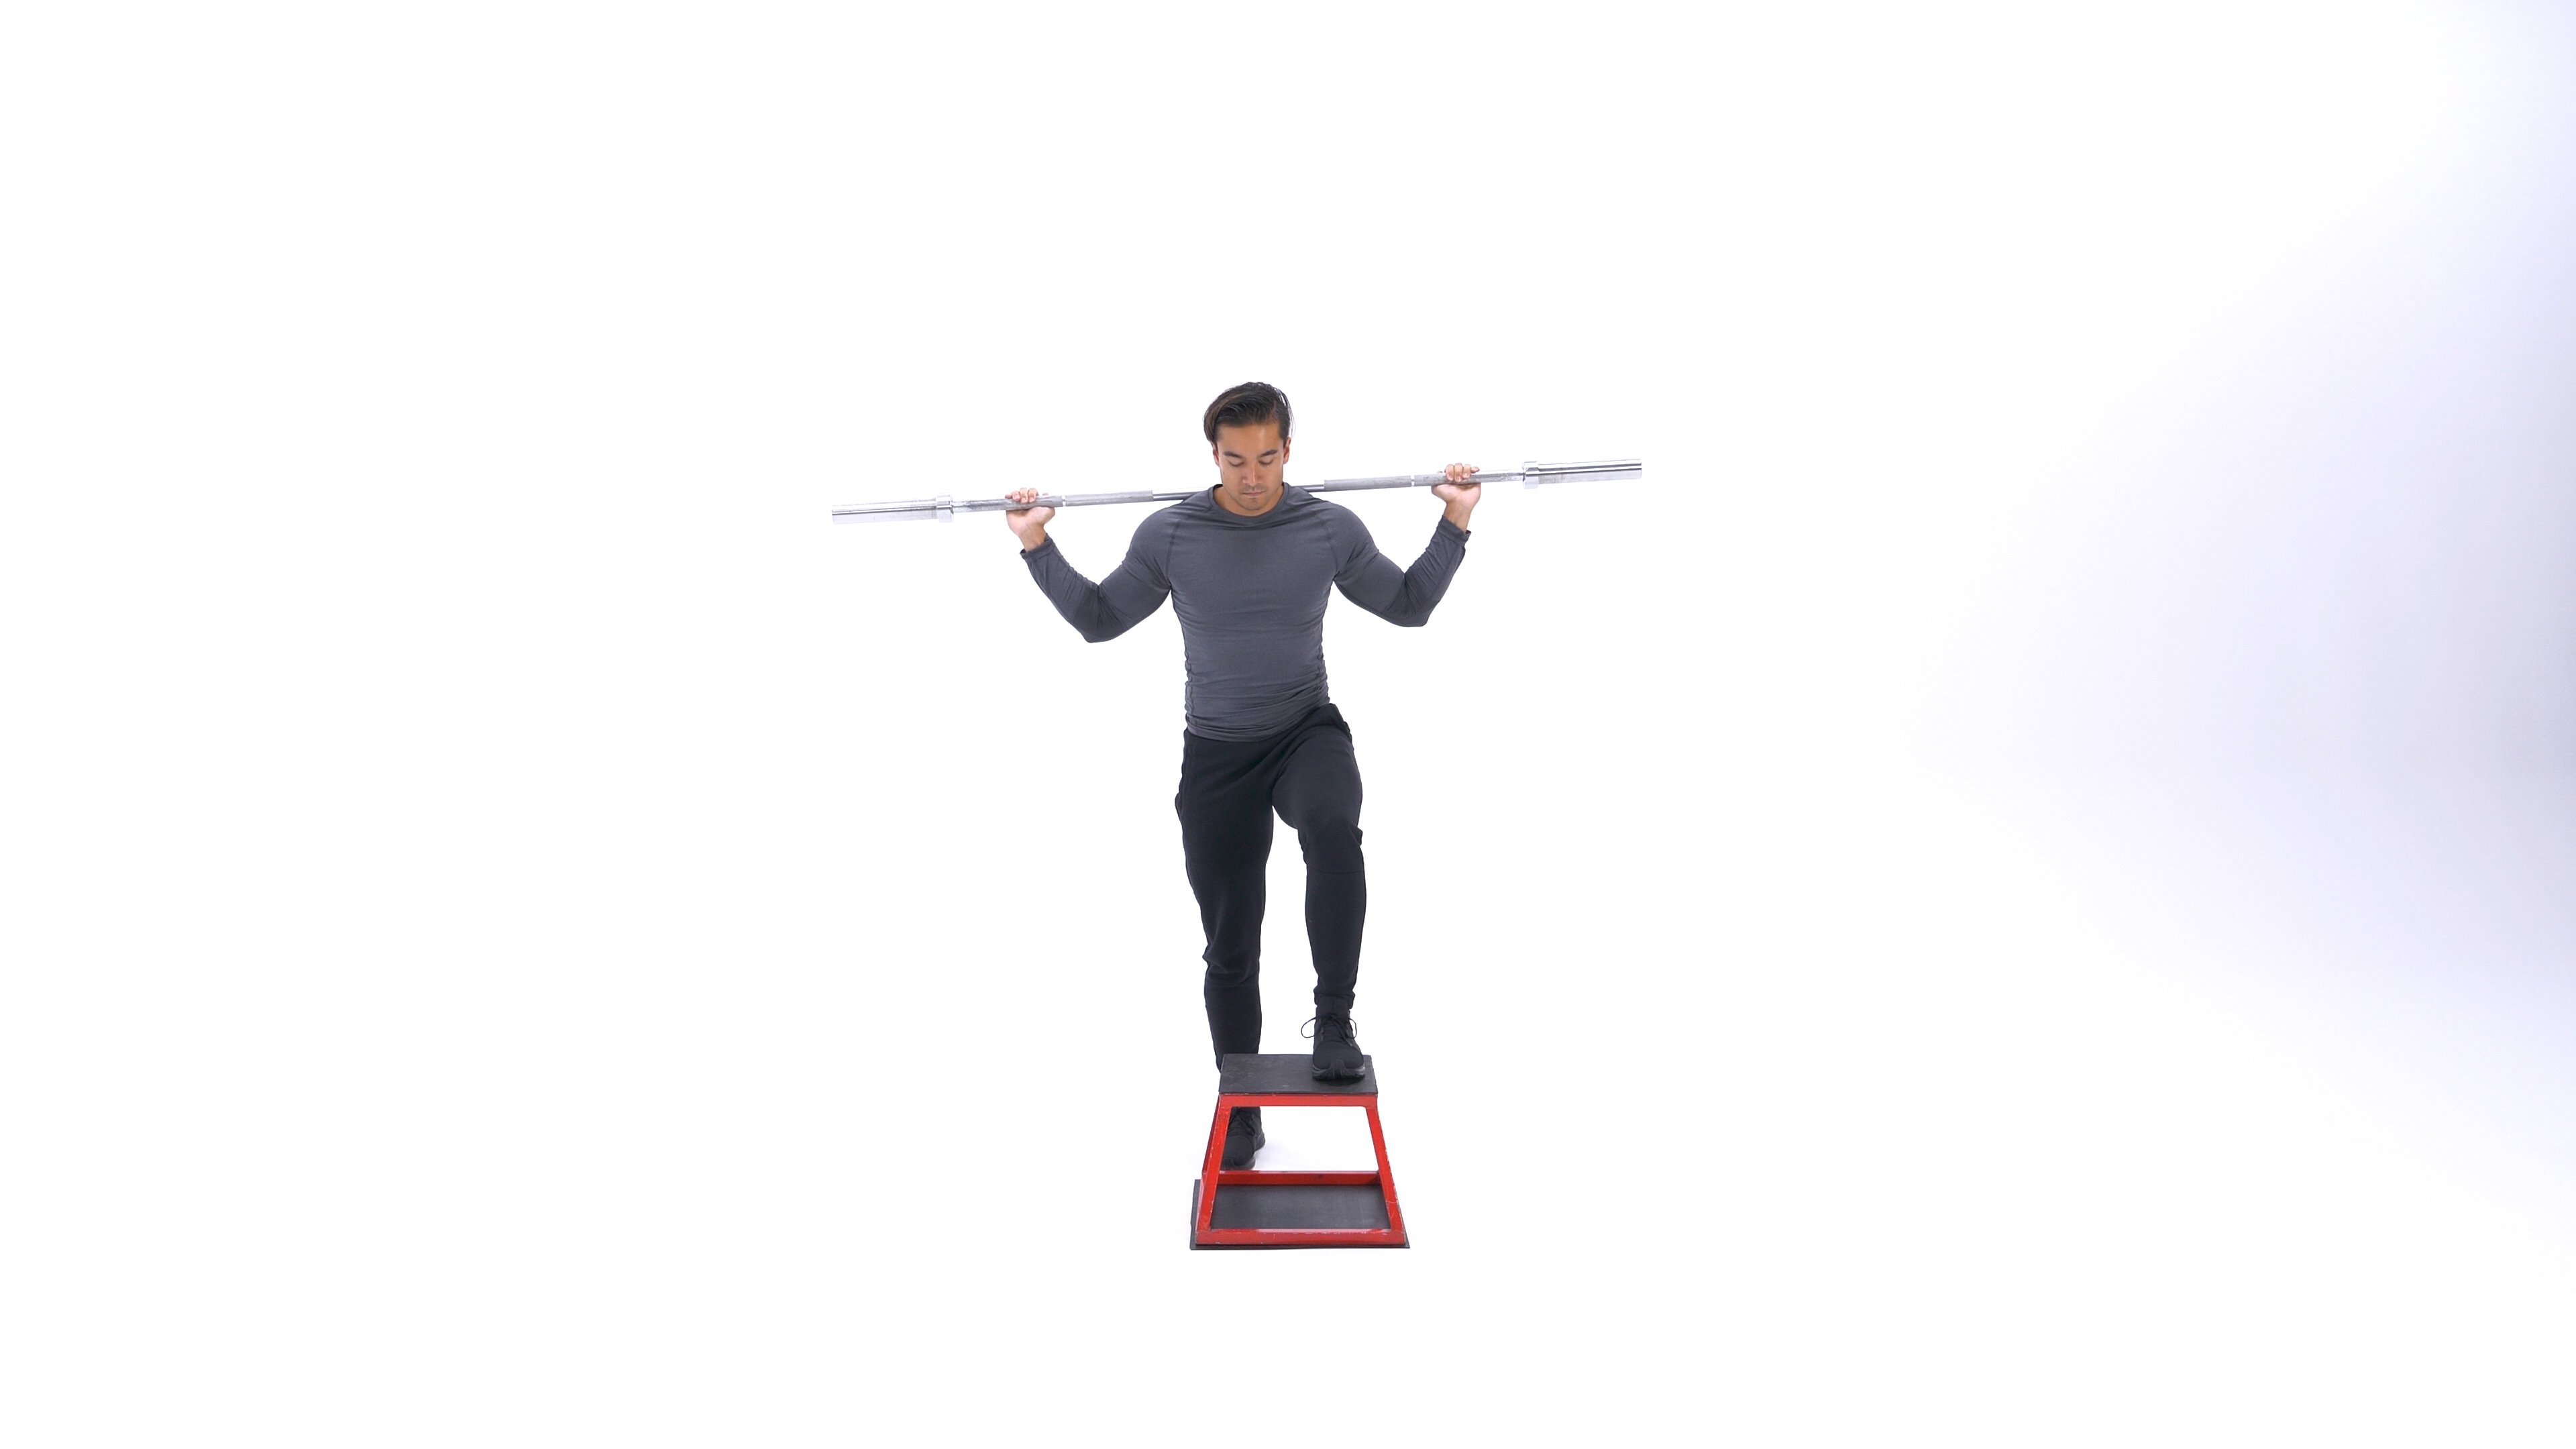 Barbell step-up image